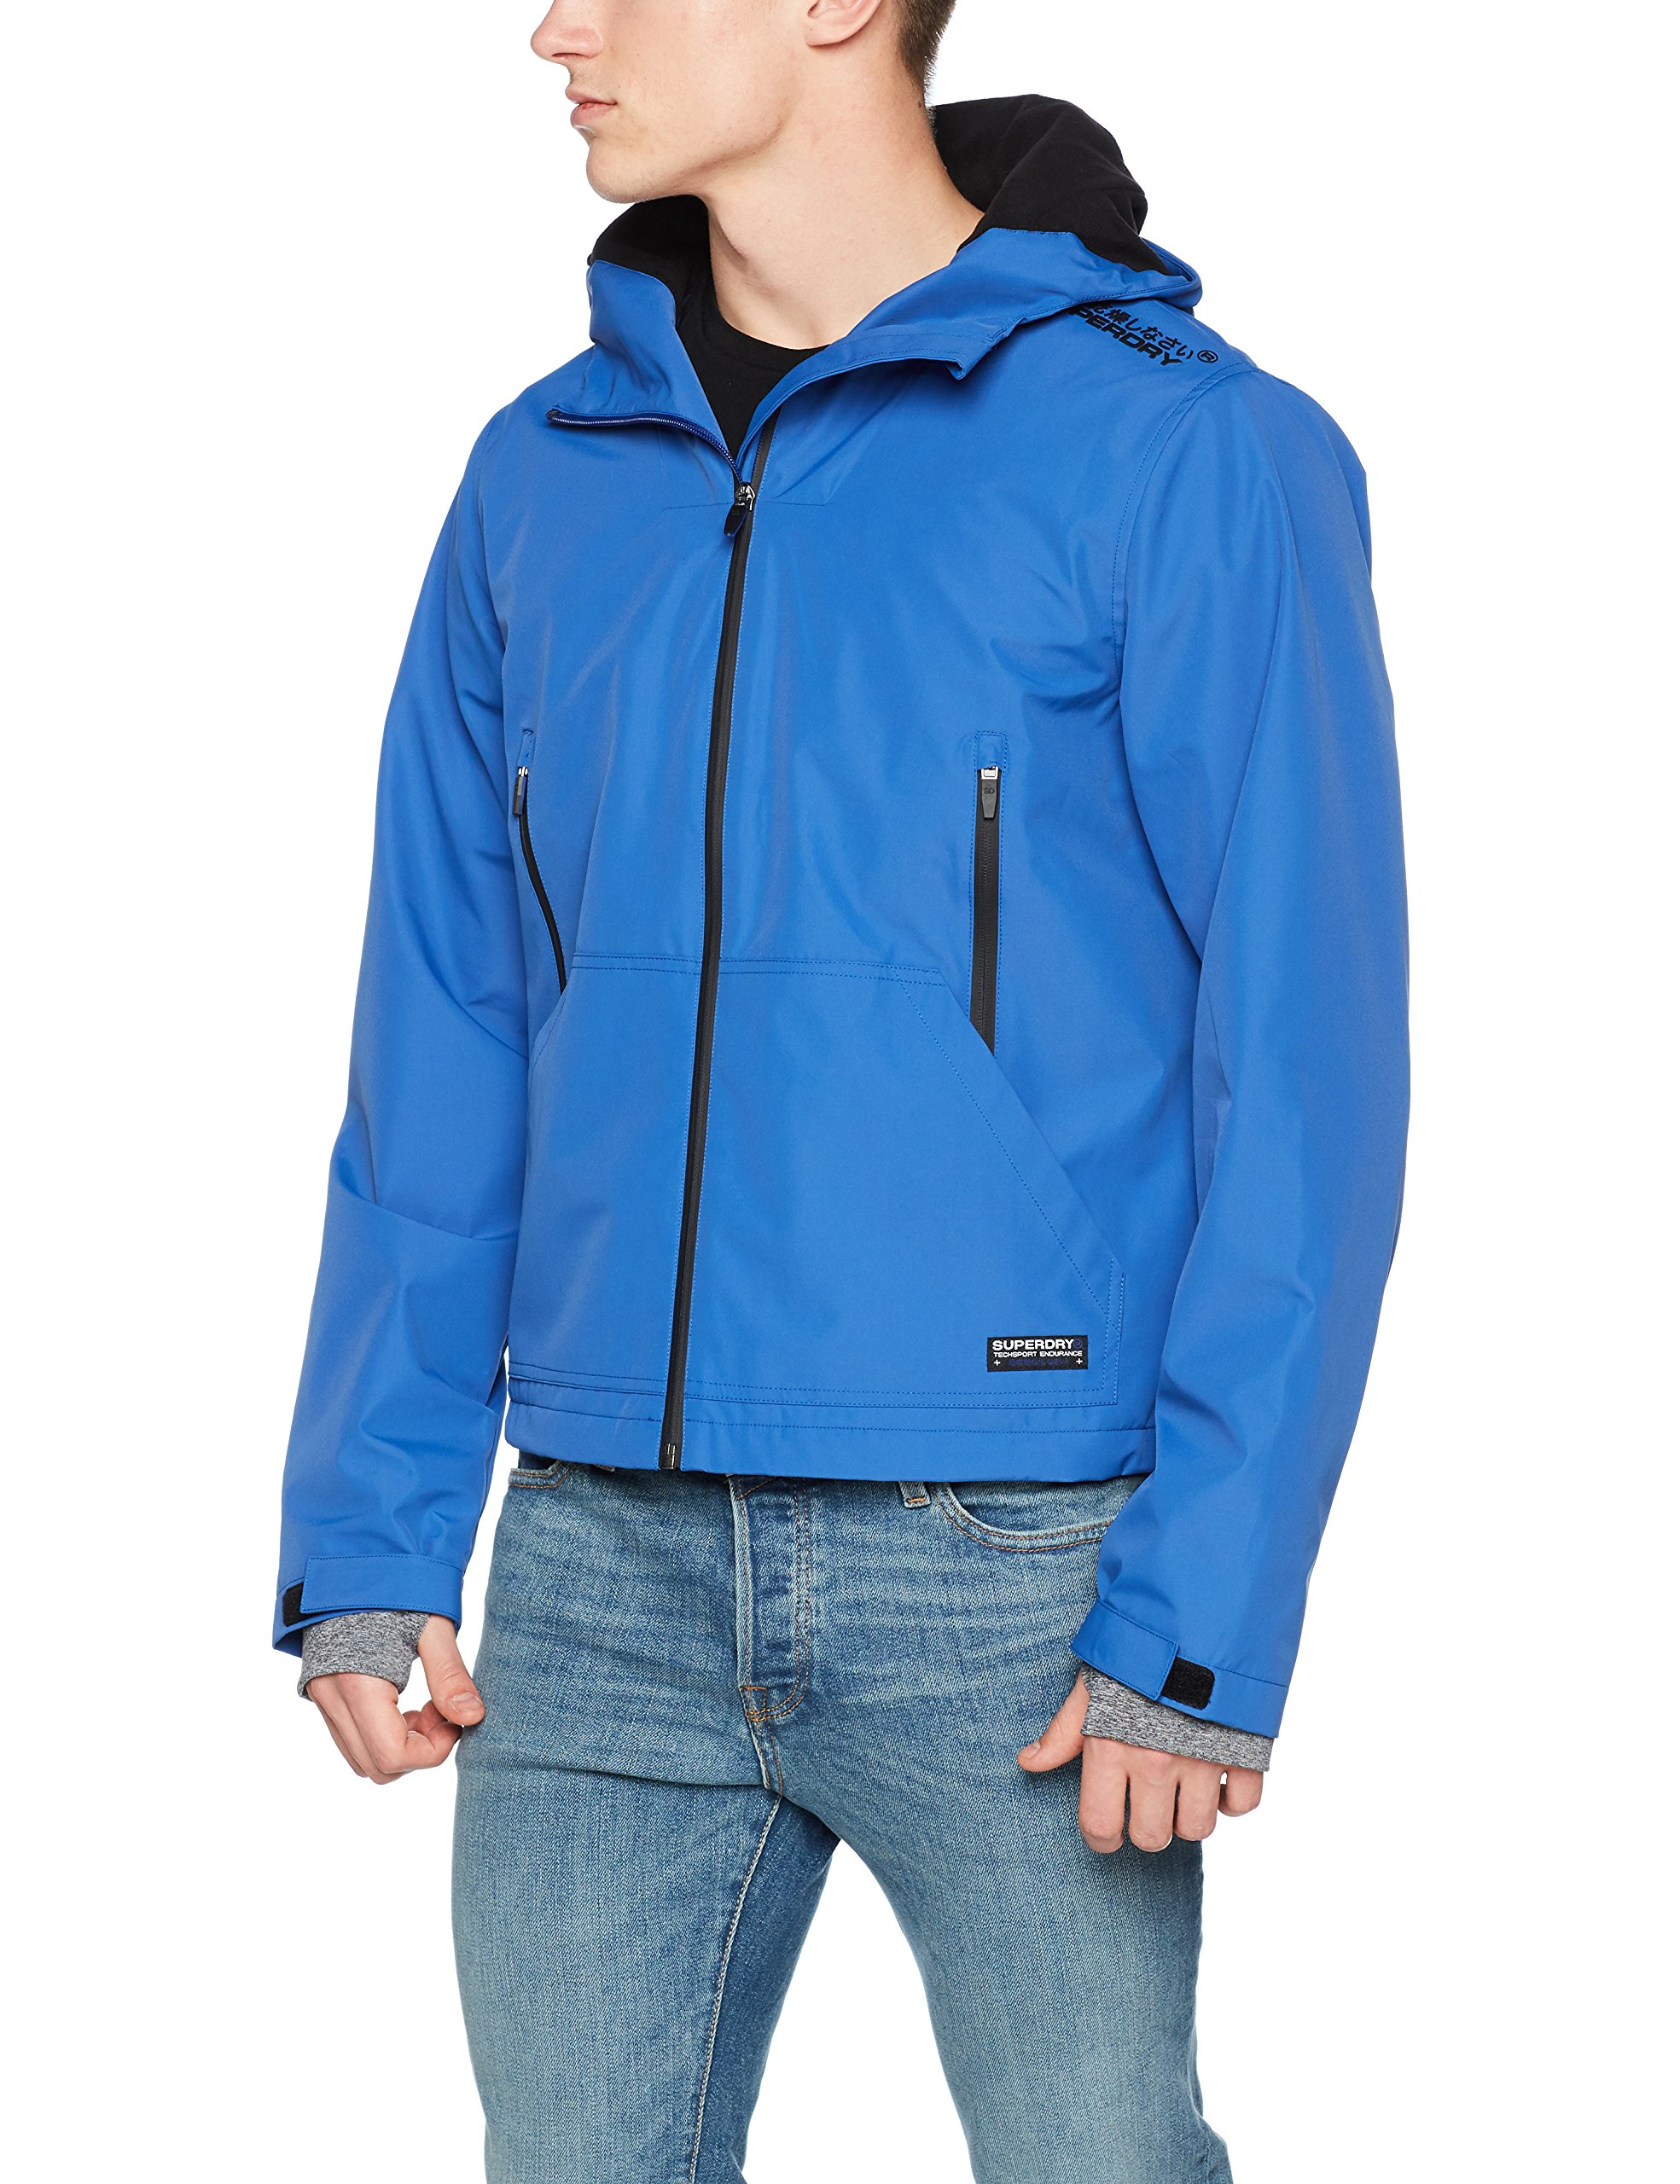 Blue De Homme SportBleuelectric Veste Elite 3ebLarge Superdry Windcheater jqcRL5A34